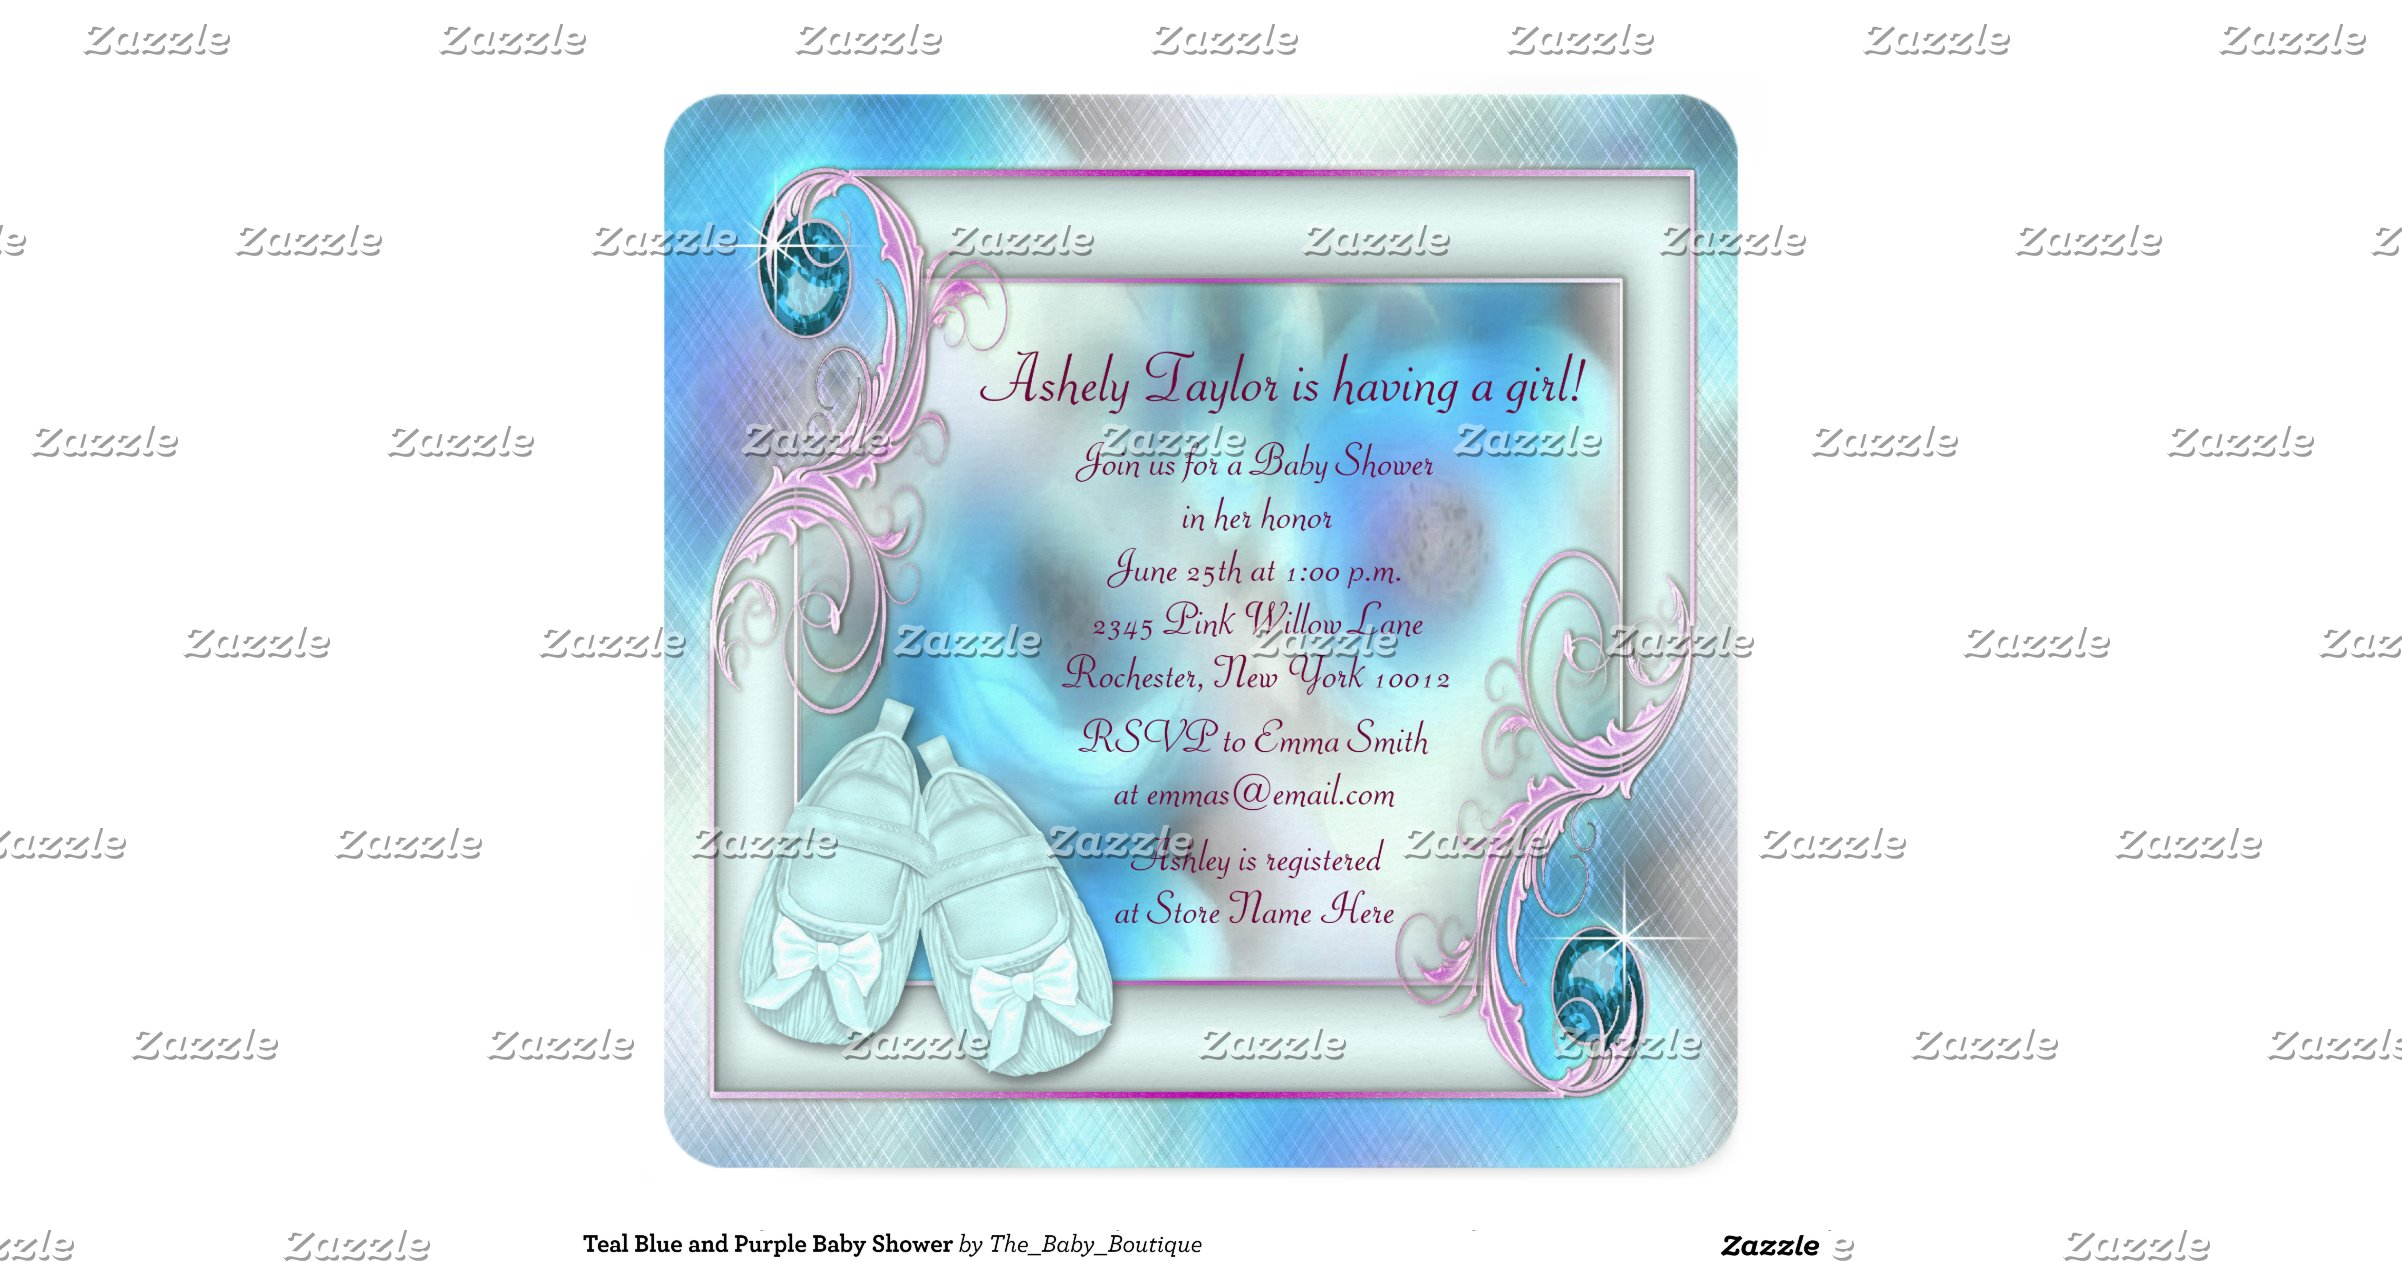 teal blue and purple baby shower invitation